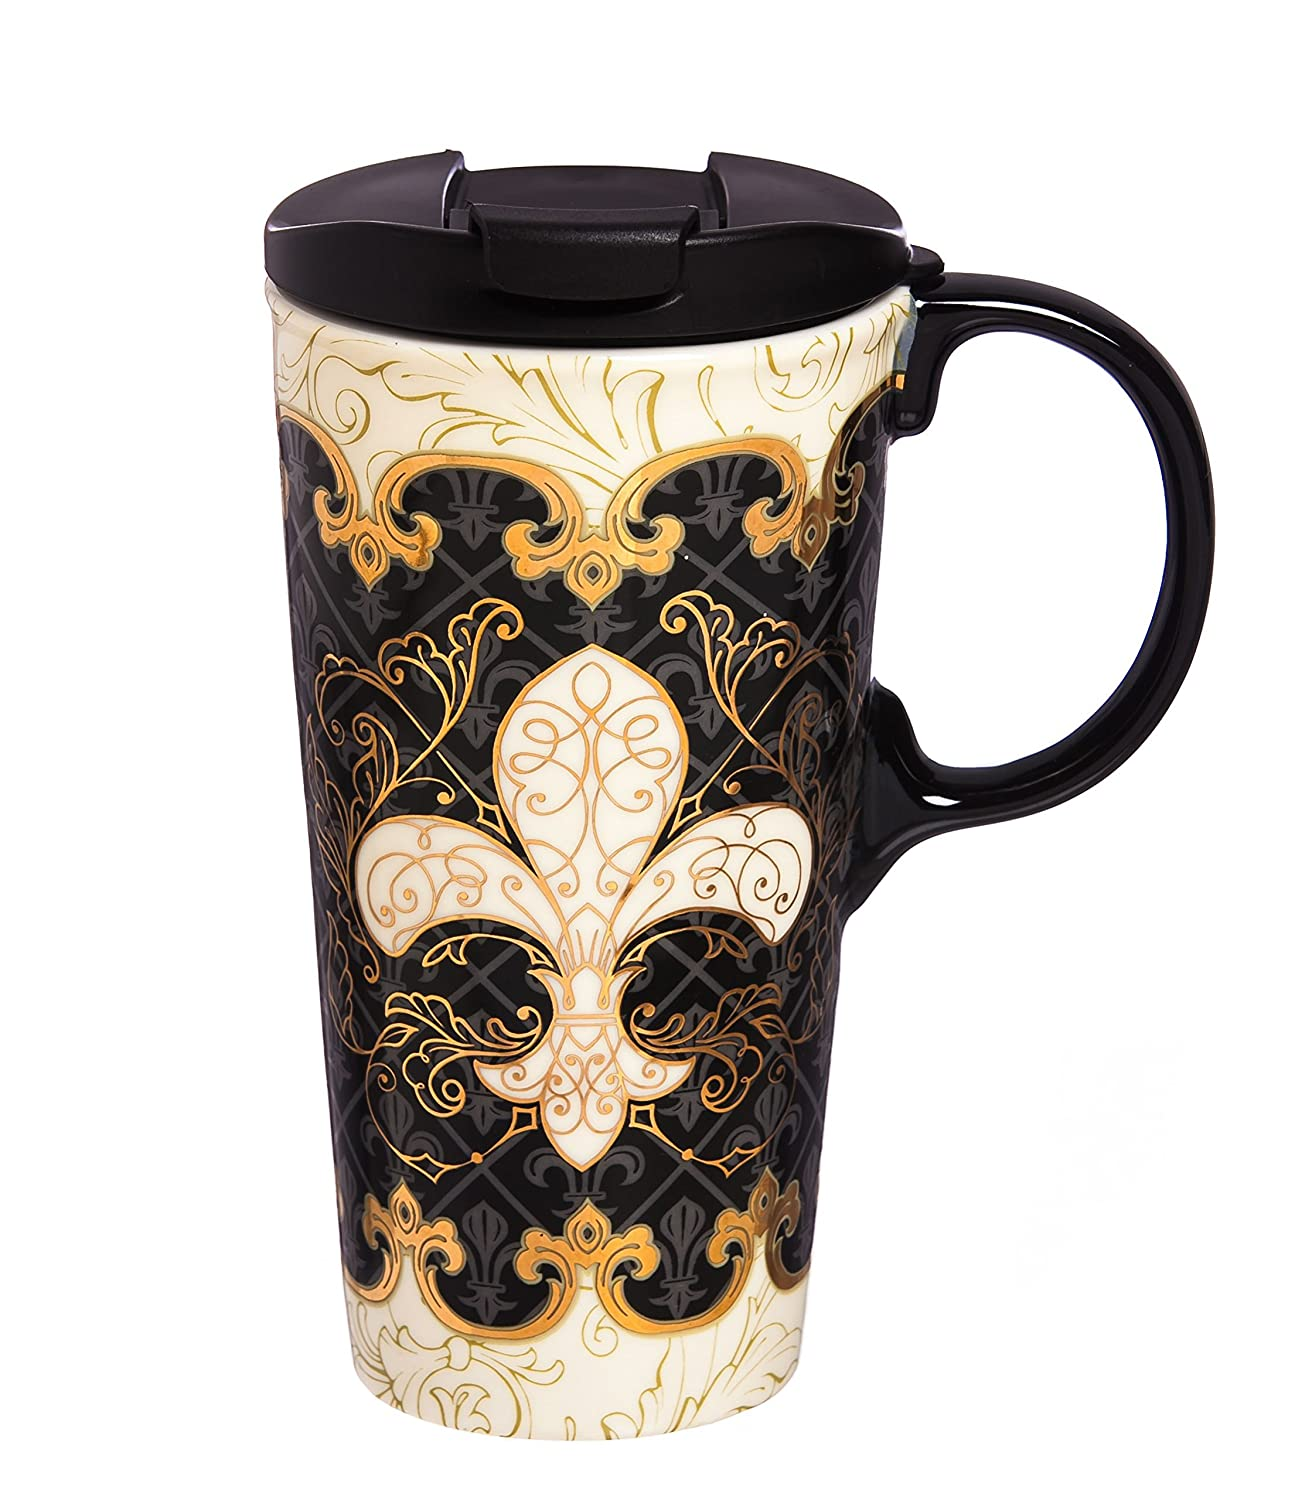 Cypress Home Baroque Splendor Ceramic Travel Coffee Mug, 17 ounces Evergreen Enterprises Inc.